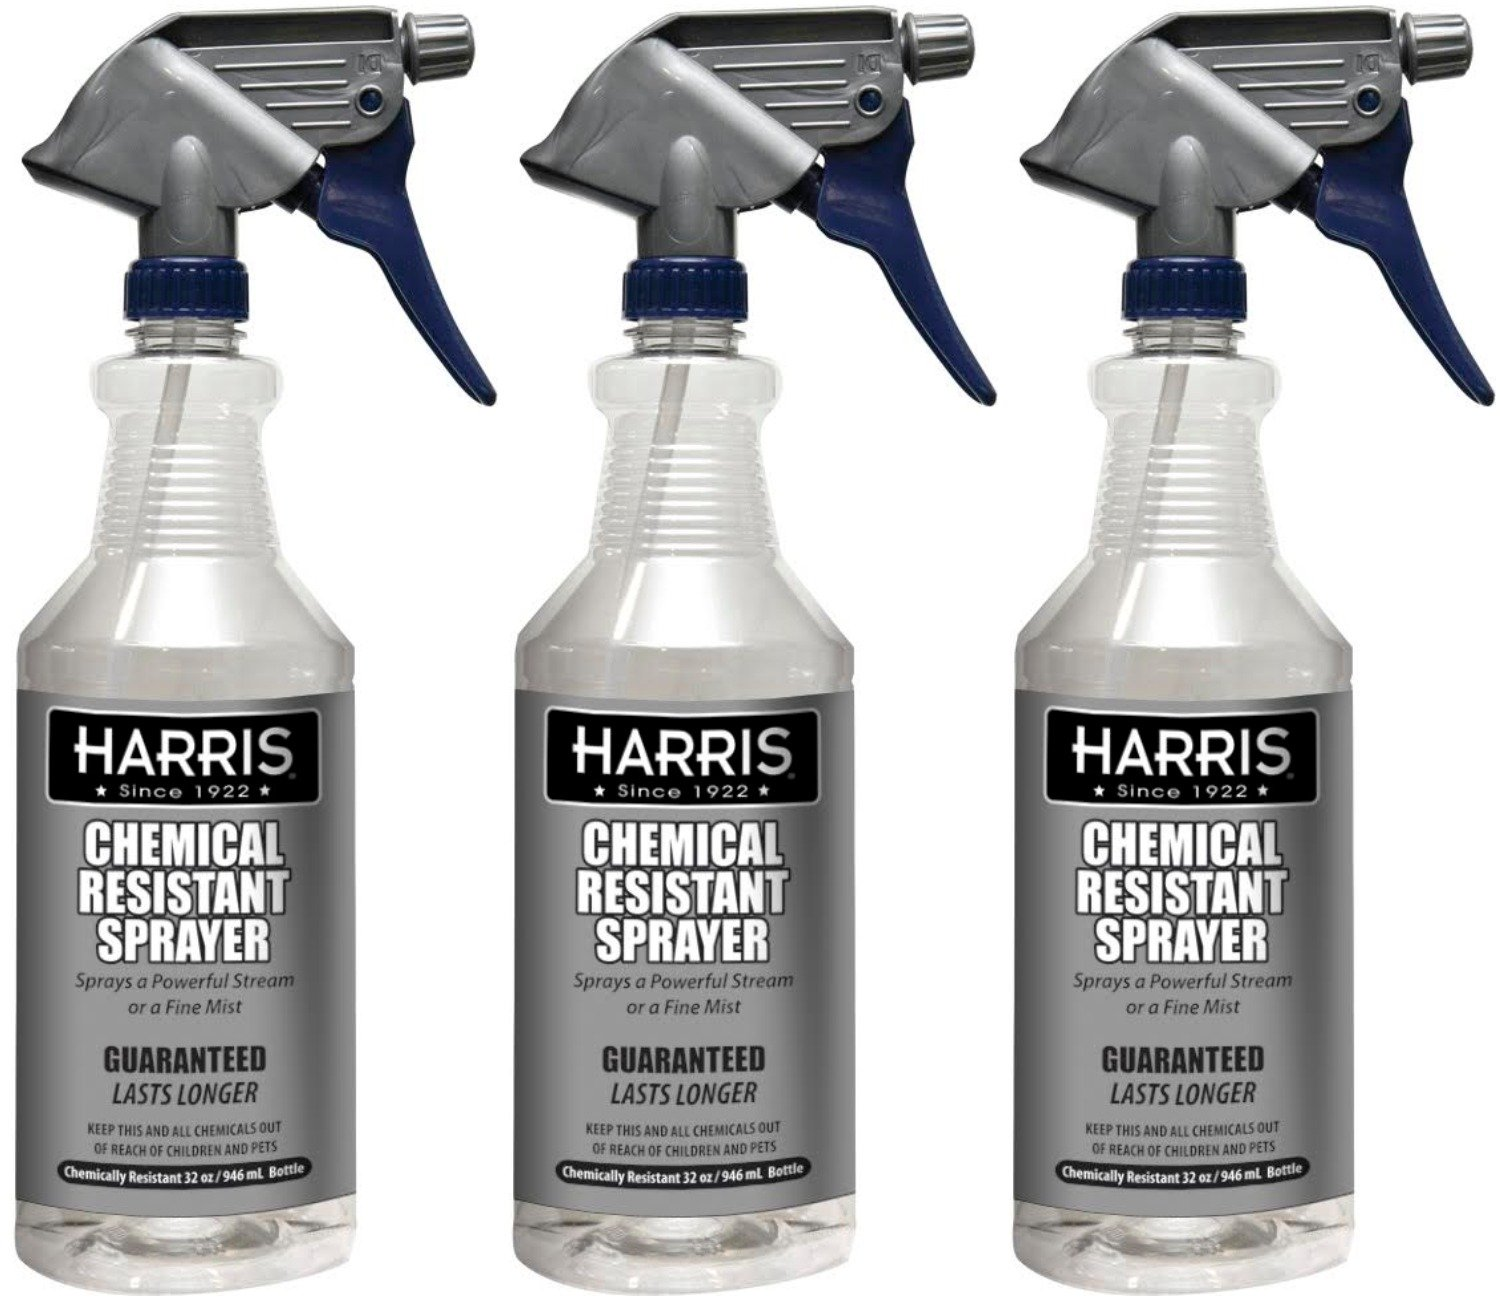 Harris 100% Chemically Resistant Professional Spray Bottles, 32oz (3-Pack) by Harris